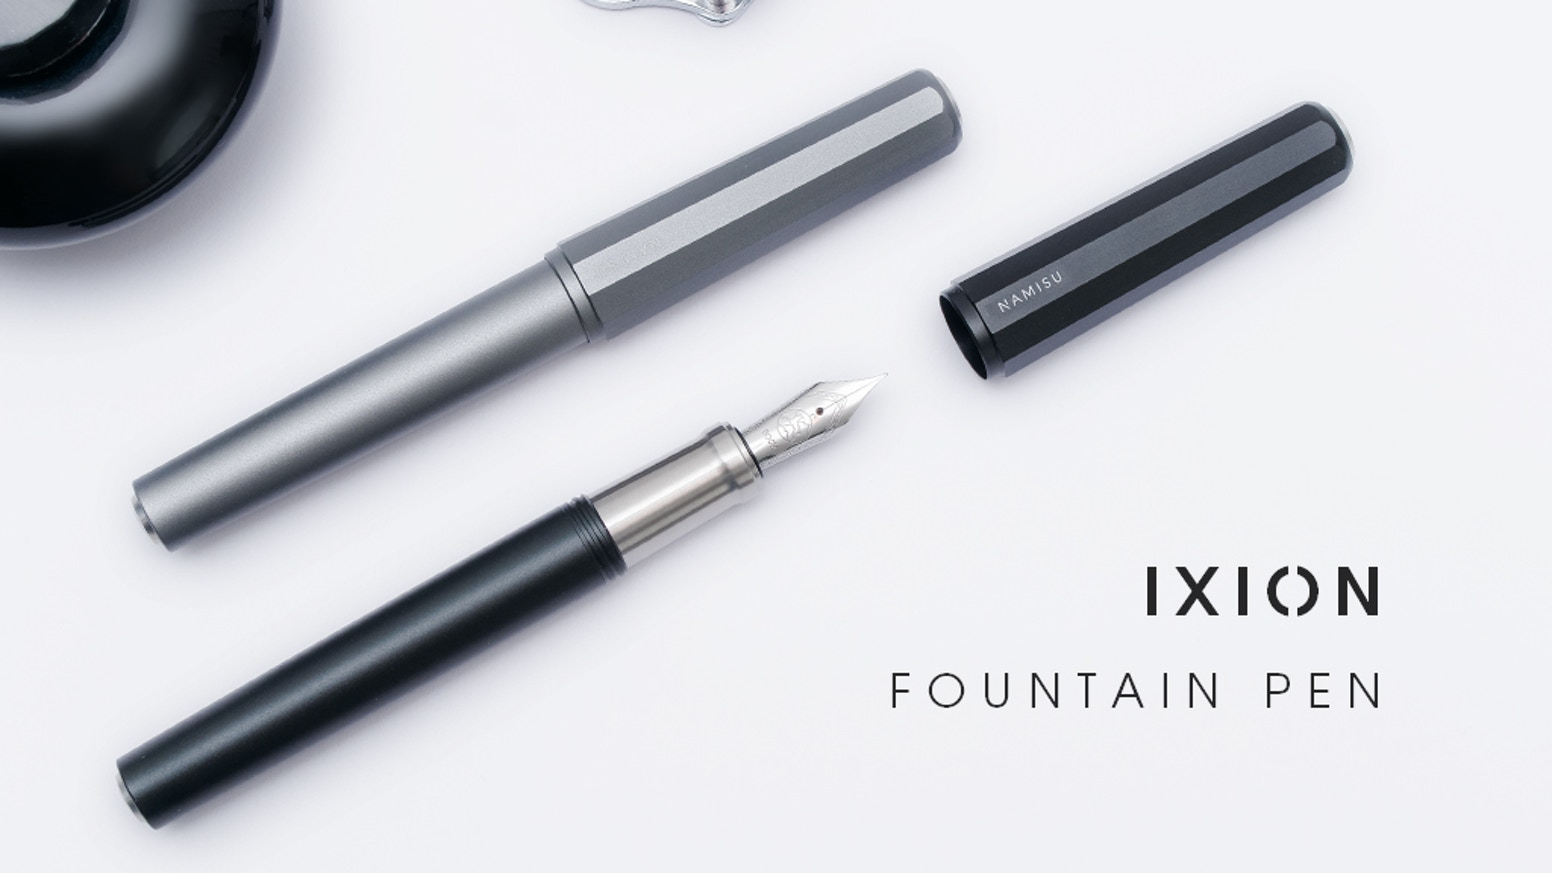 A modern fountain pen with a minimalist design. Premium materials and high-end components at an affordable price.